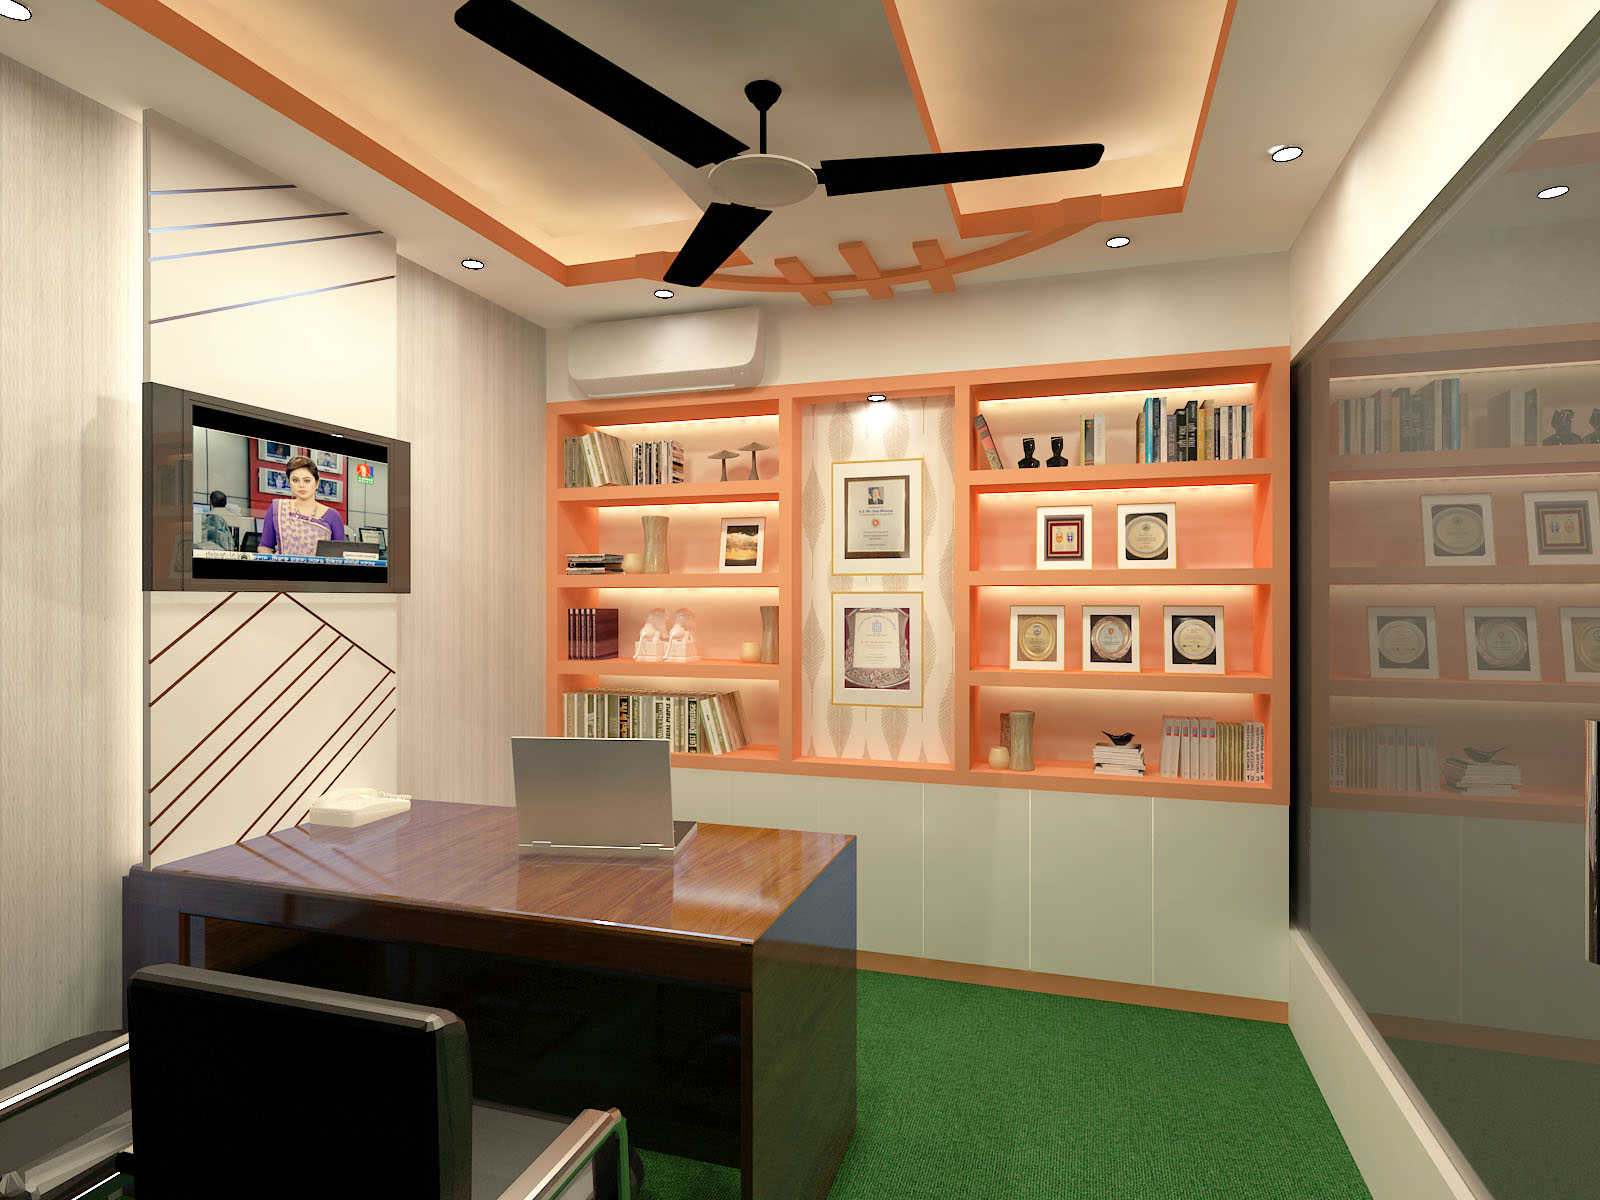 Corporate office interior design by Interior Studio Ace at PMaspire Limited